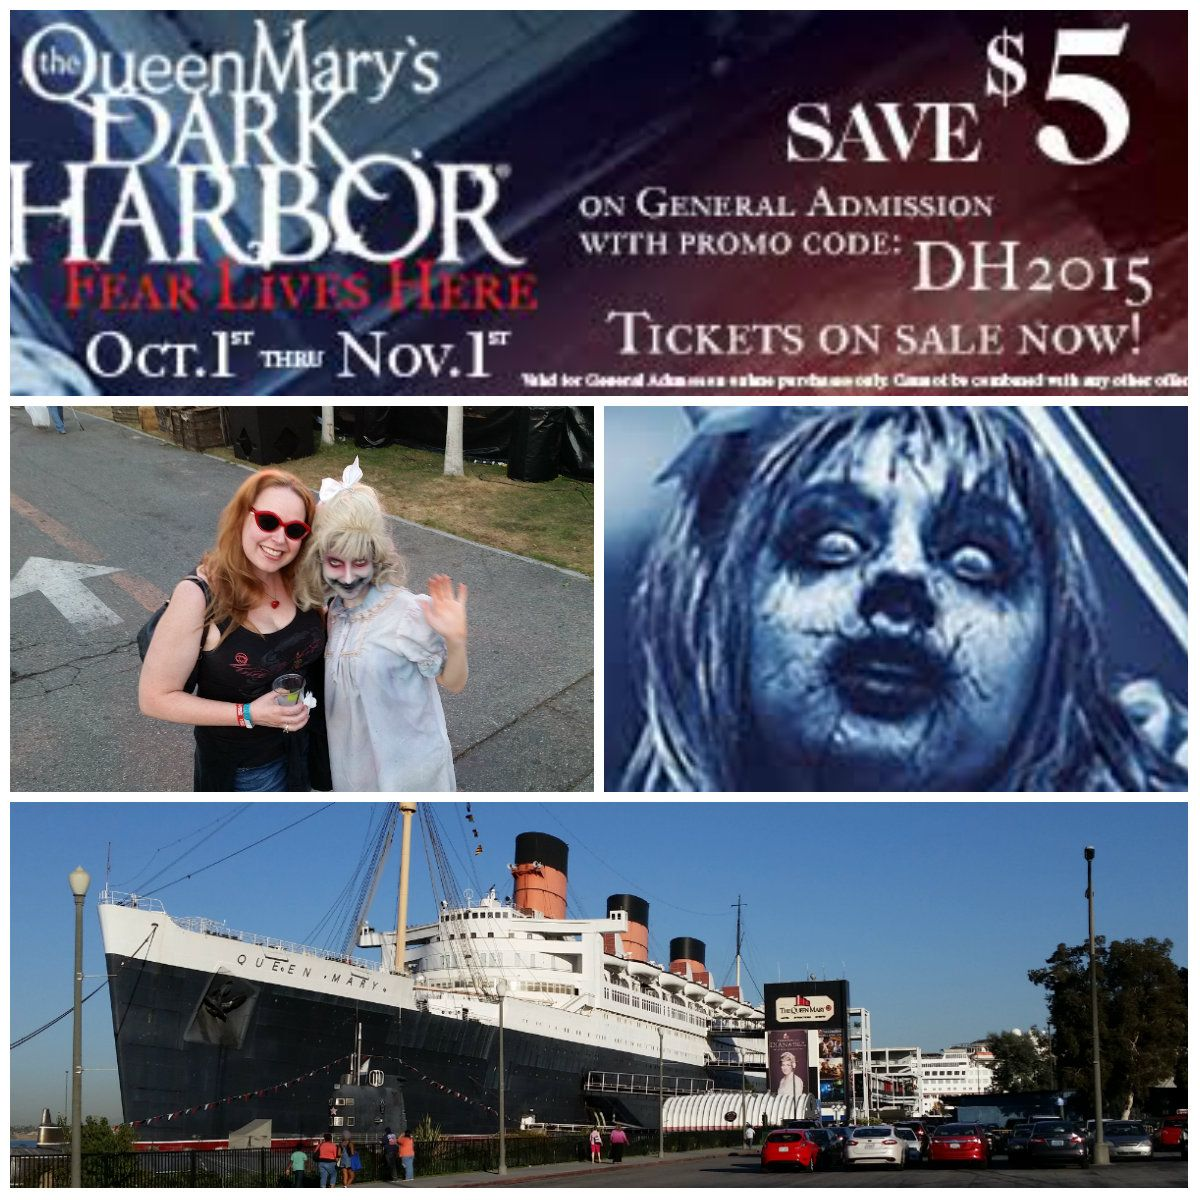 my favorite halloween event of the year, queen mary's dark harbor is